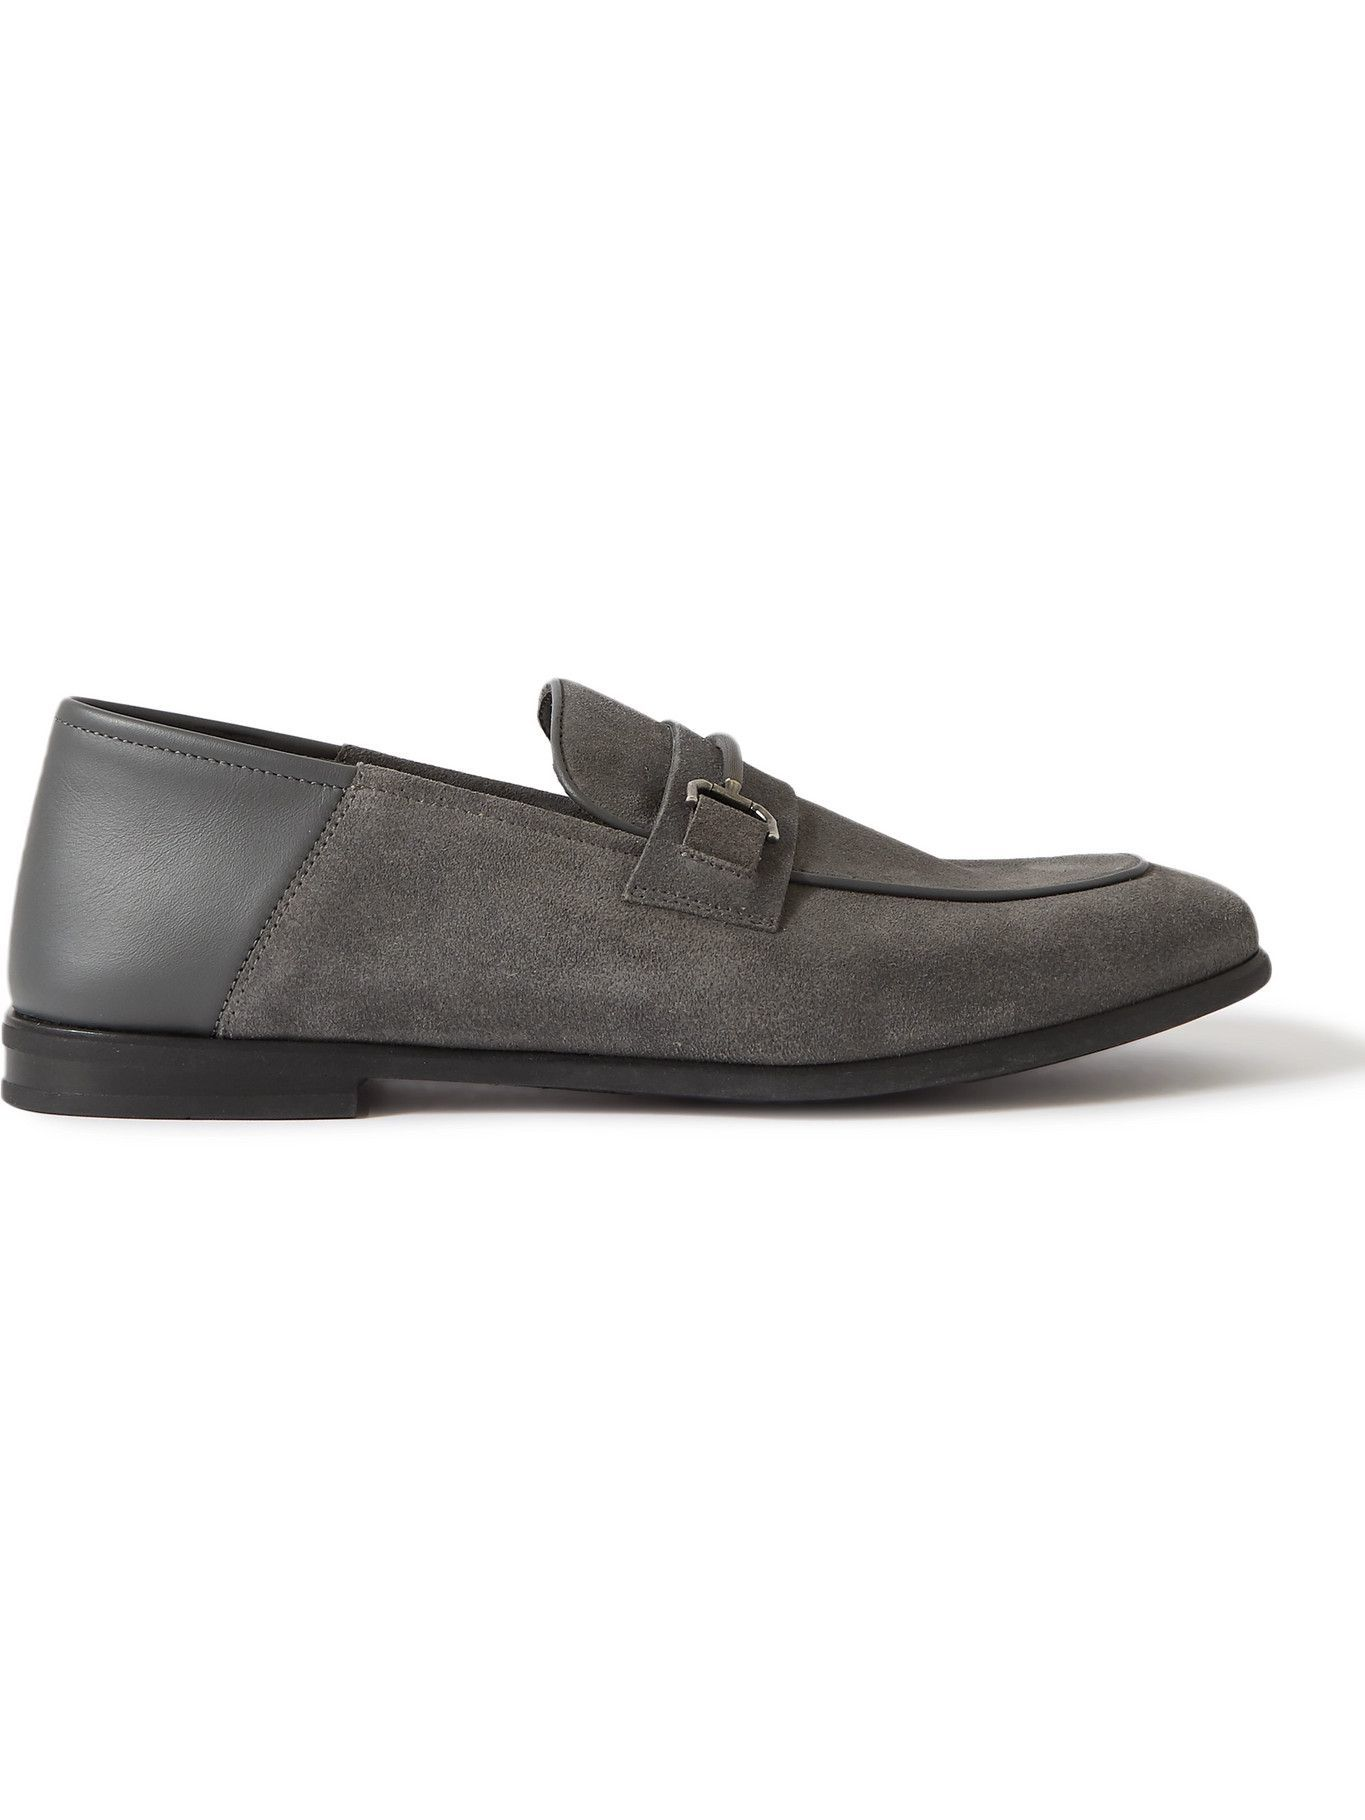 DUNHILL - Chiltern Suede and Leather Loafers - Gray